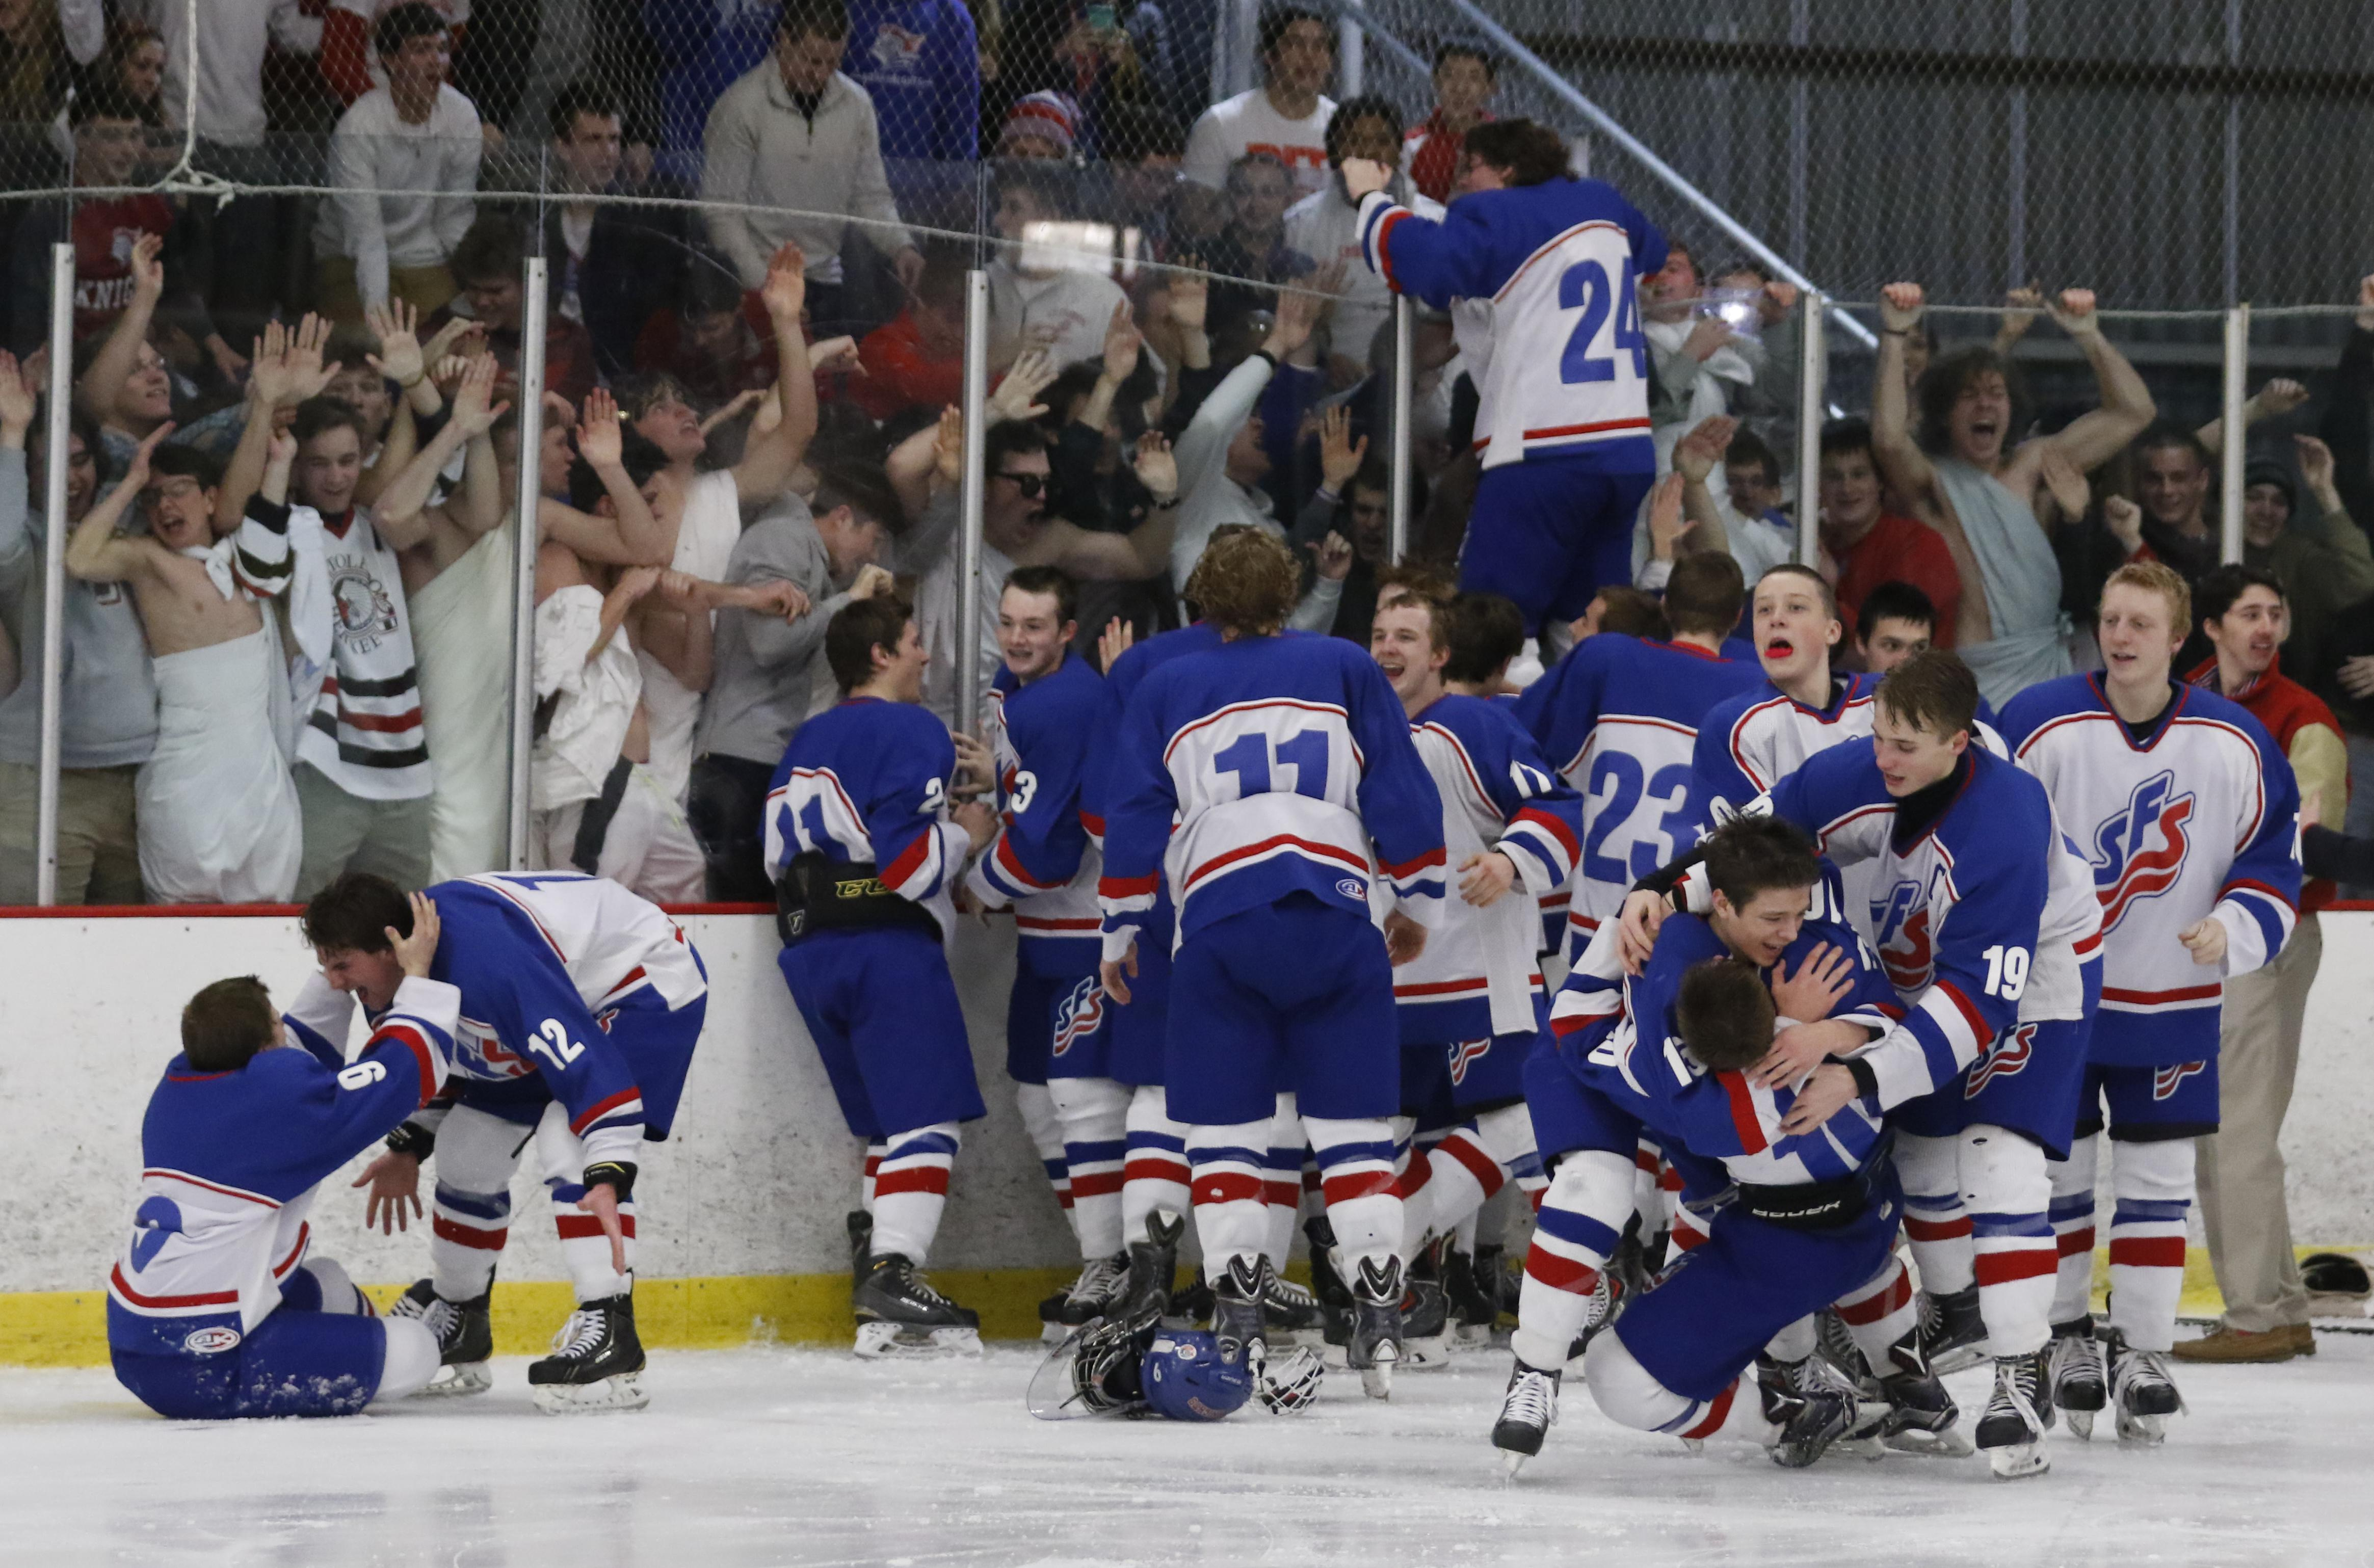 St. Francis players celebrate after defeating Bowling Green. THE BLADE/ANDY MORRISON